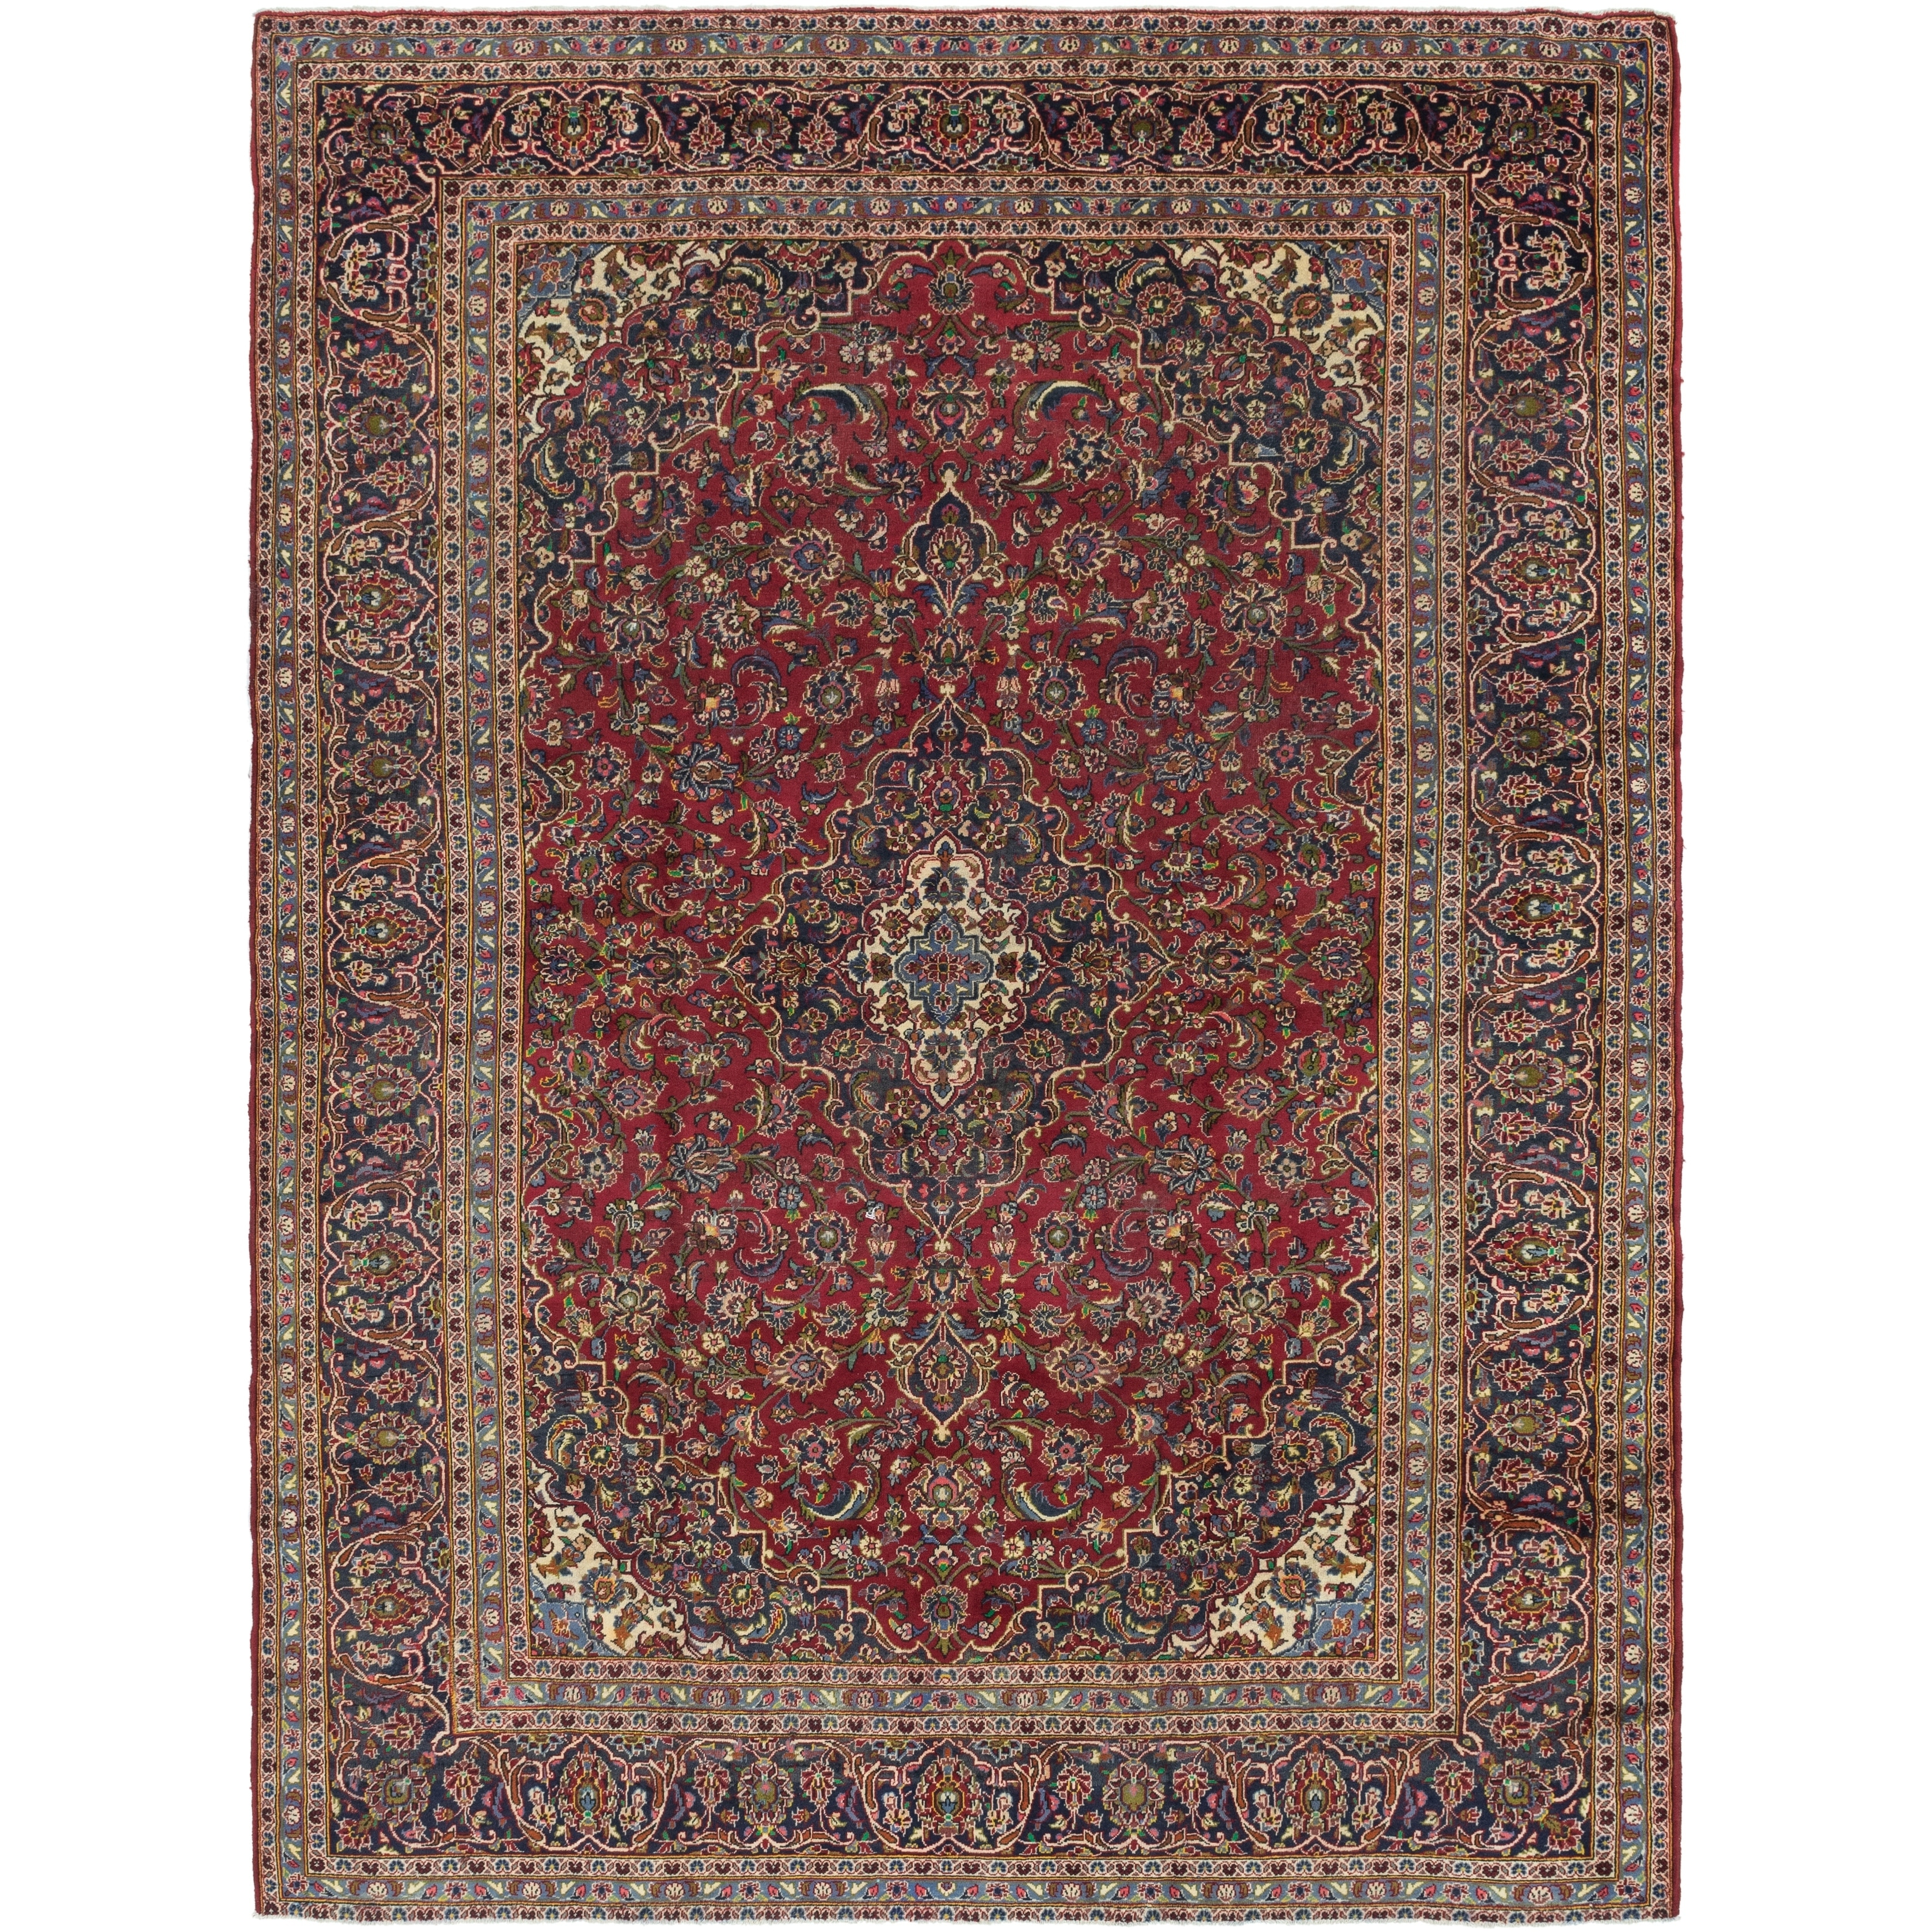 Hand Knotted Kashan Semi Antique Wool Area Rug - 9 4 x 12 10 (Red - 9 4 x 12 10)